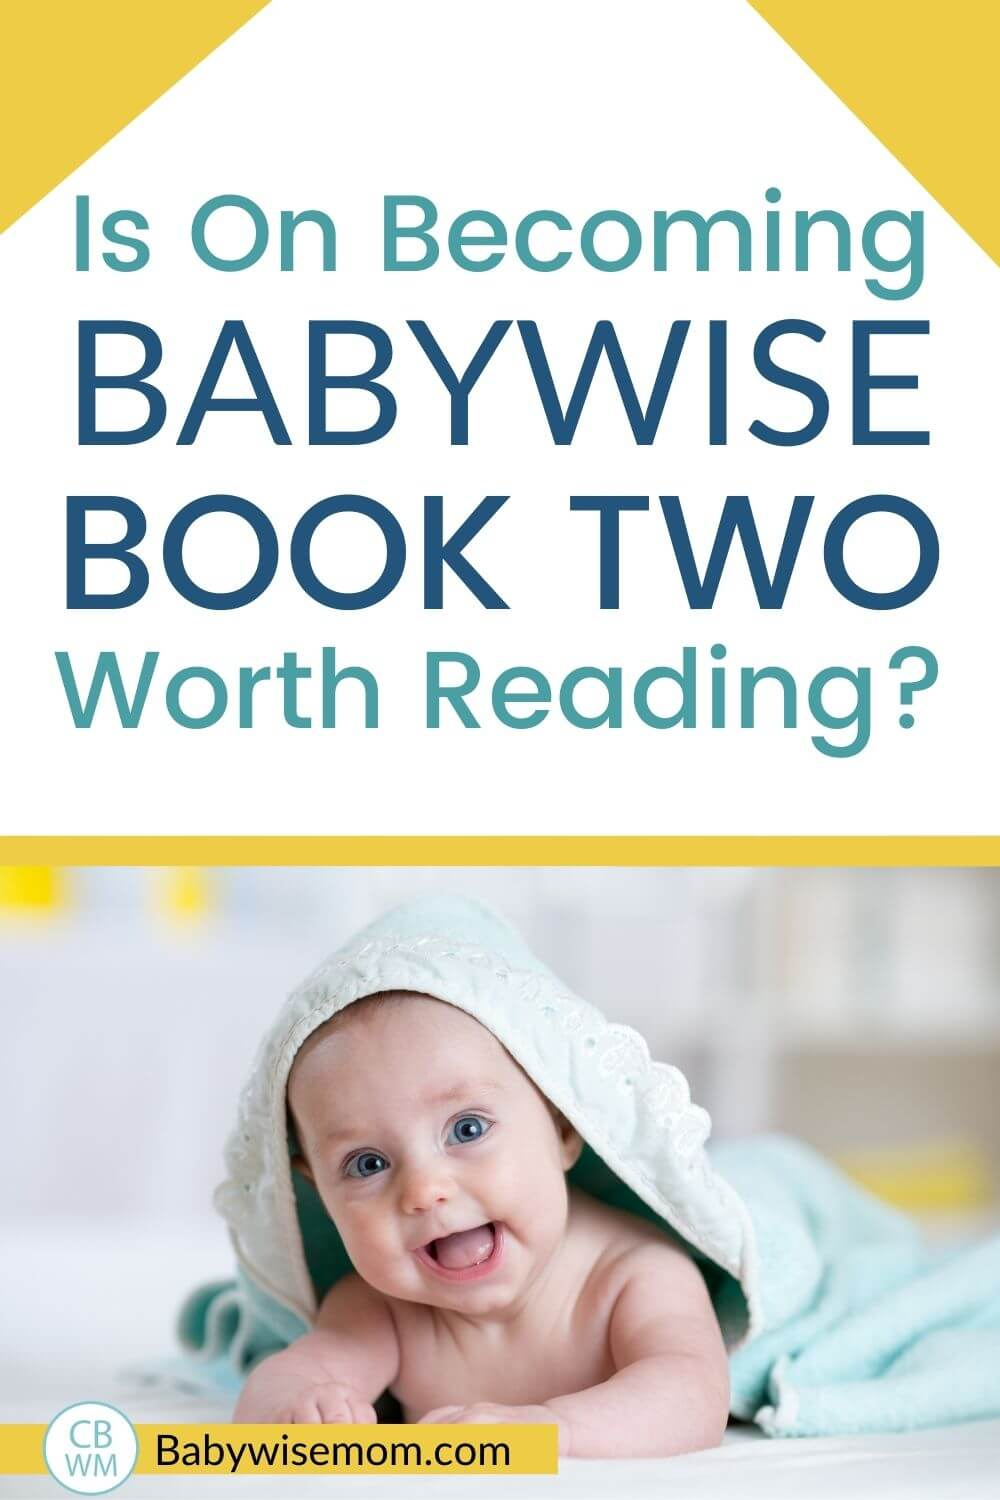 Babywise book two worth reading pinnable image